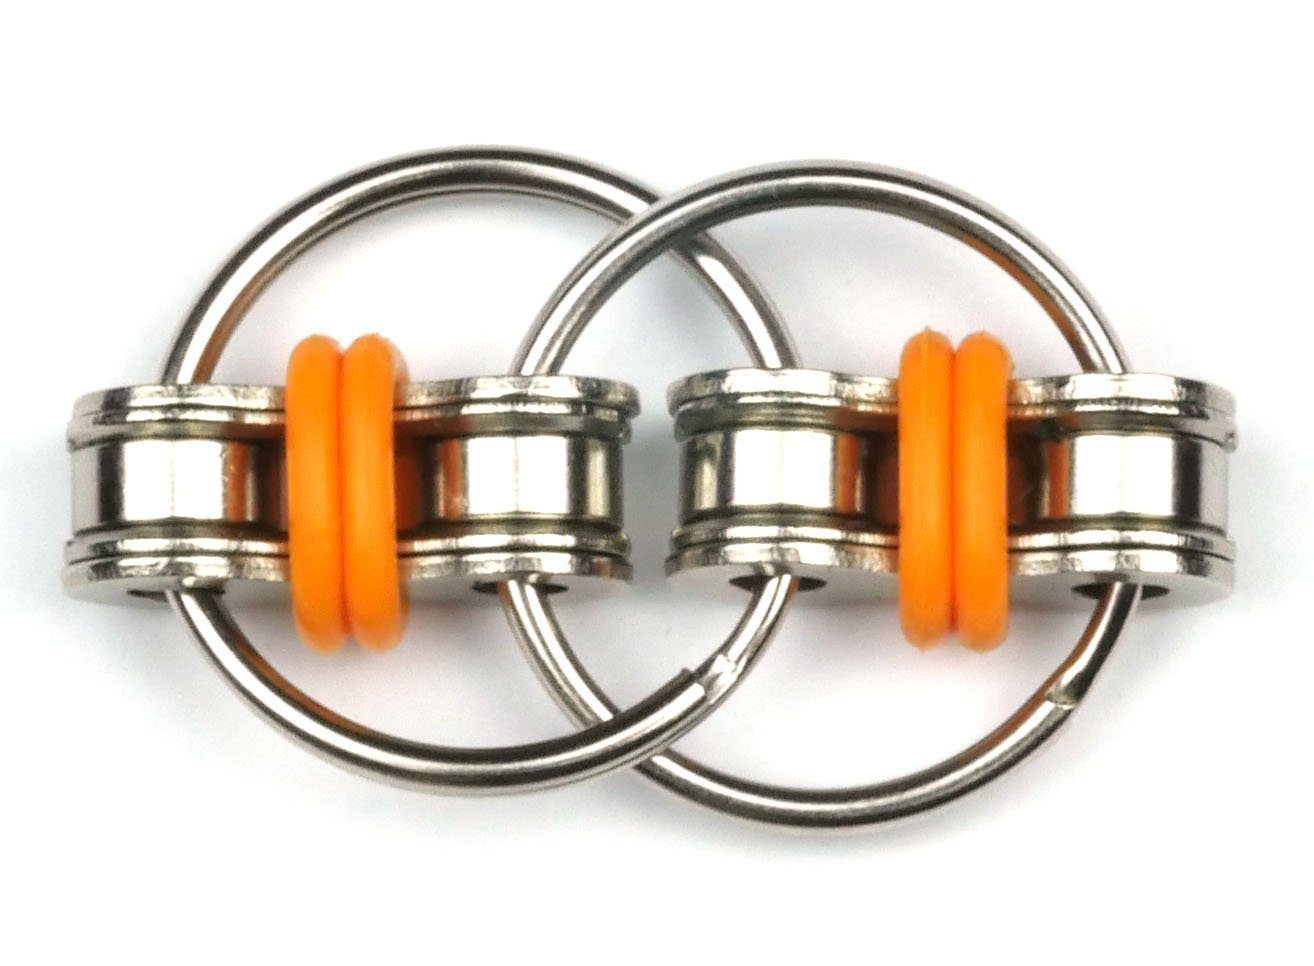 Key Chain Fidget Toy (MQ-KCT01)